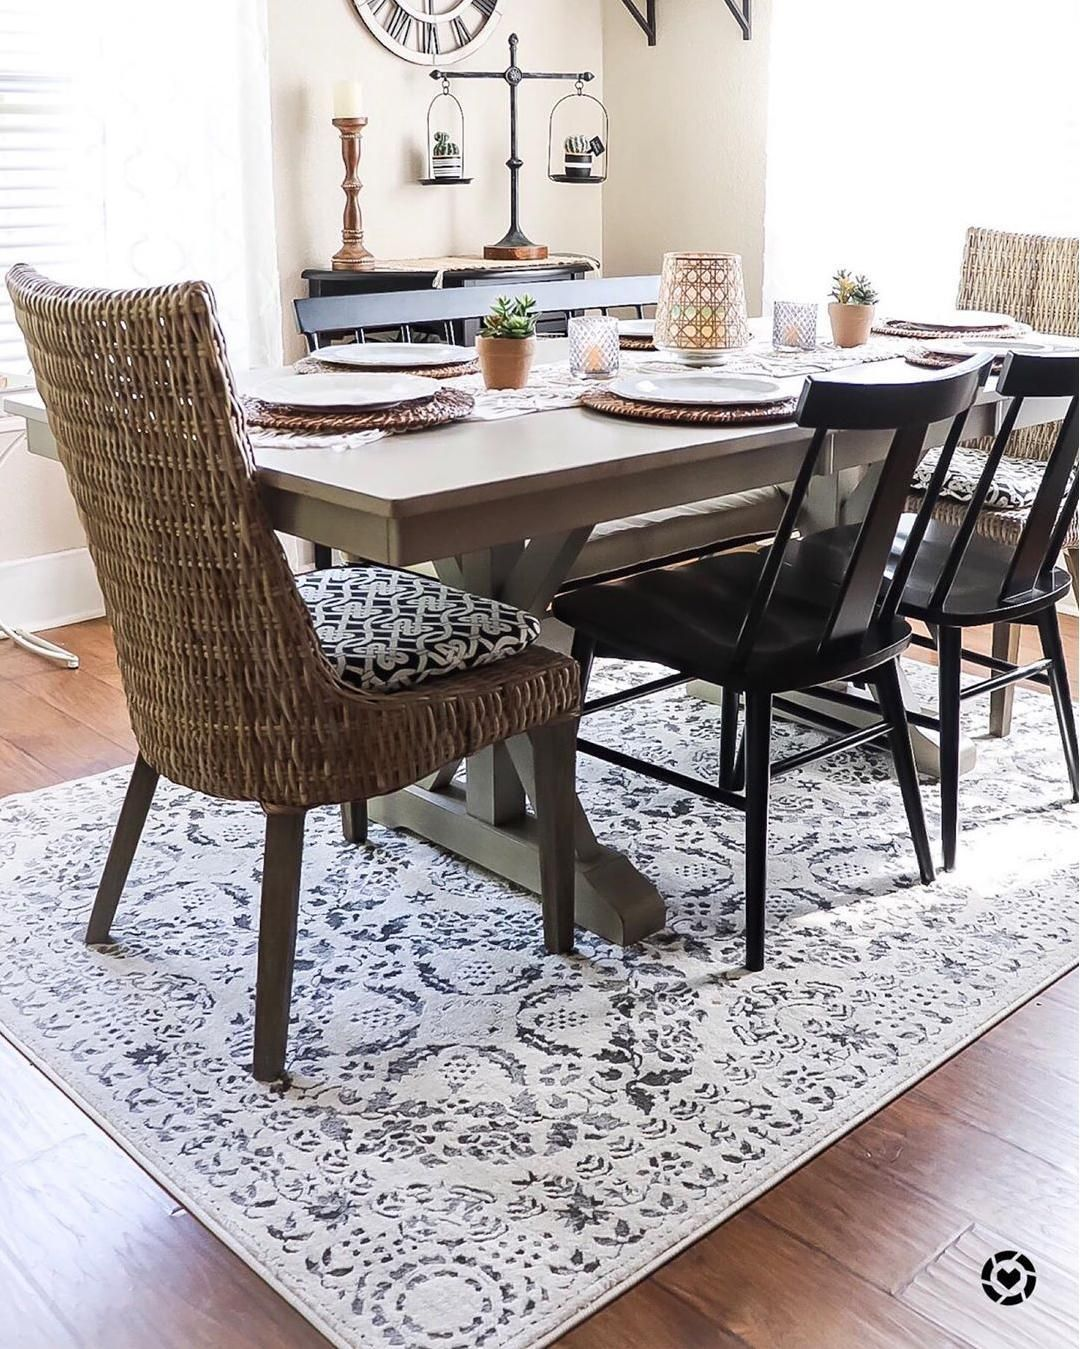 How Gorgeous Is This Diningroom By Purposefuls Featuring Our Megargel Area Rug Boutiquerugs Farmhouse Farmhou Rugs In Living Room Area Room Rugs Room Rugs